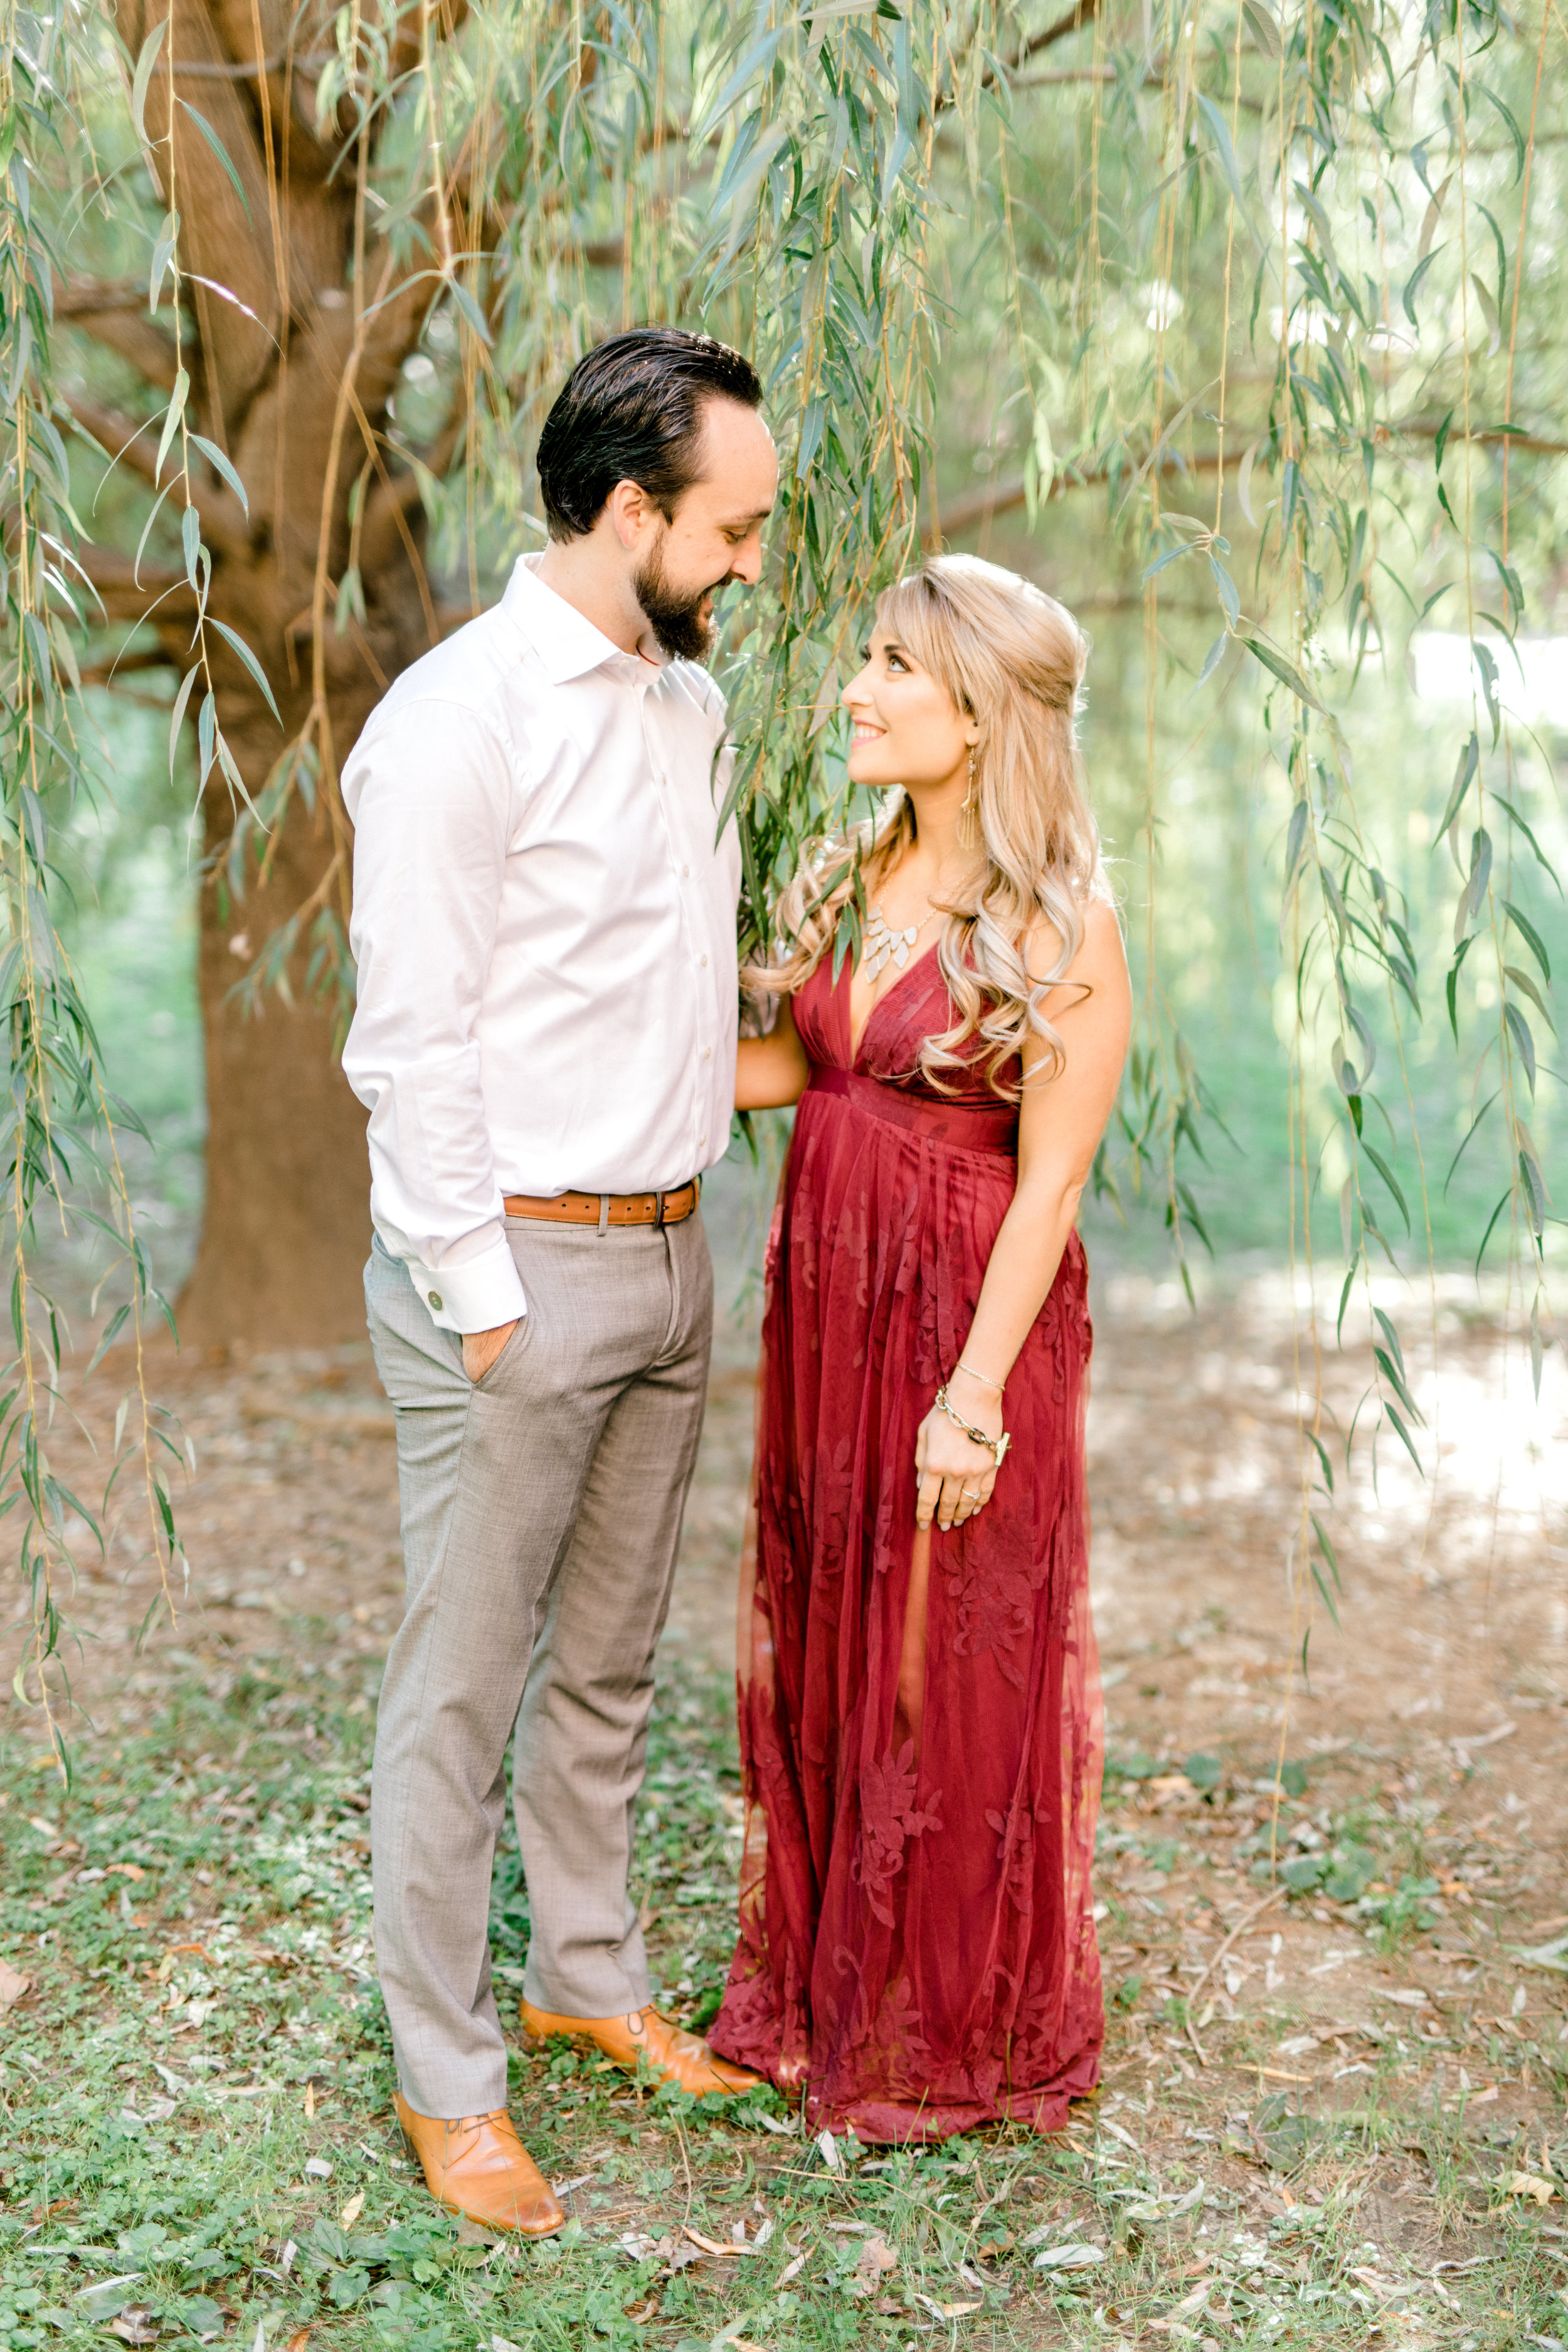 We loved the romantic look of Nikki's burgundy dress with Dale's white and grey outfit for their bright fall engagement session in Old City, Philadelphia.